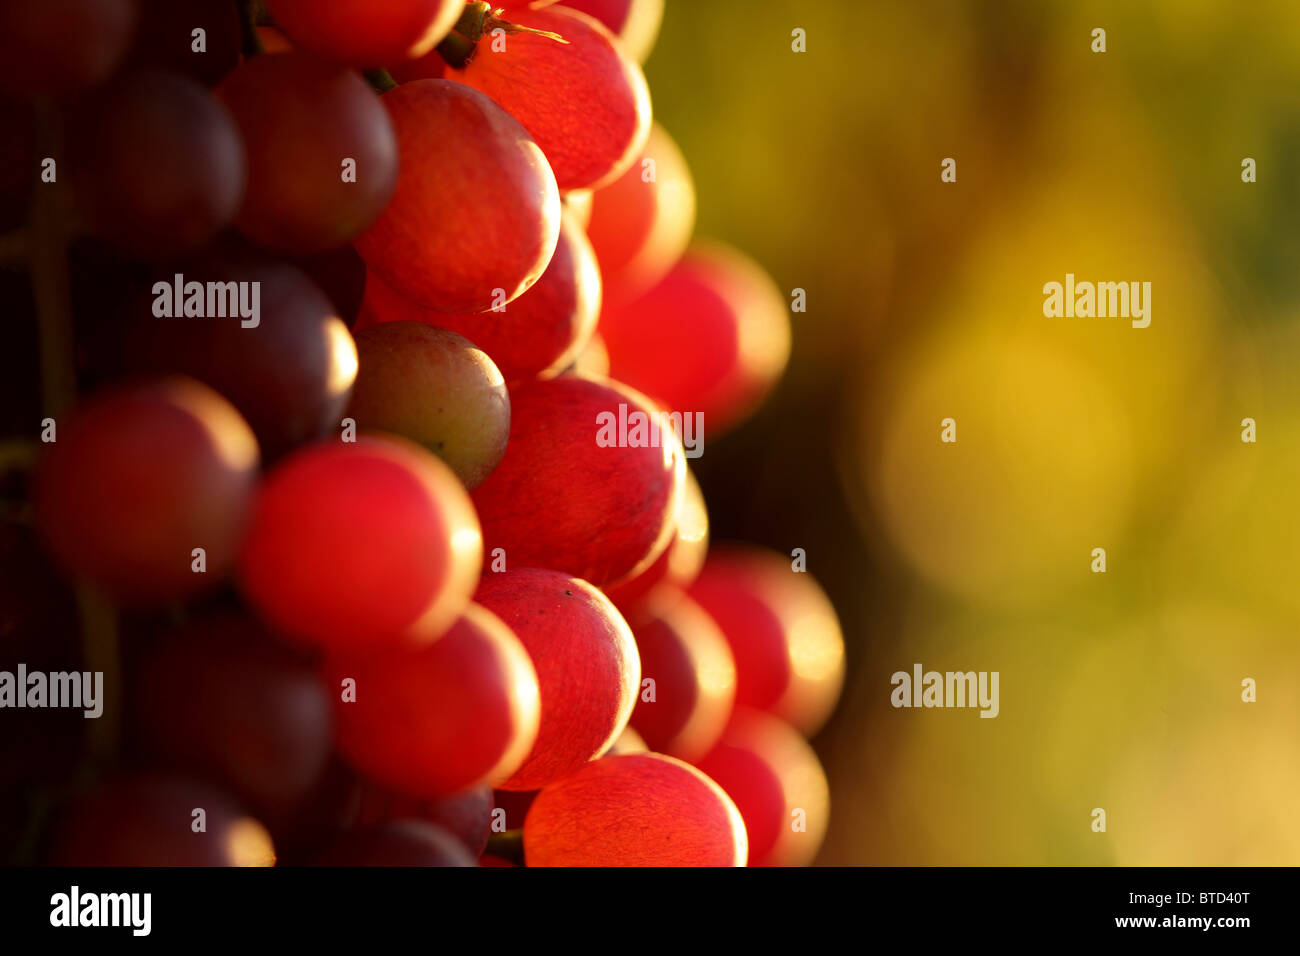 Raisins de cuve Photo Stock